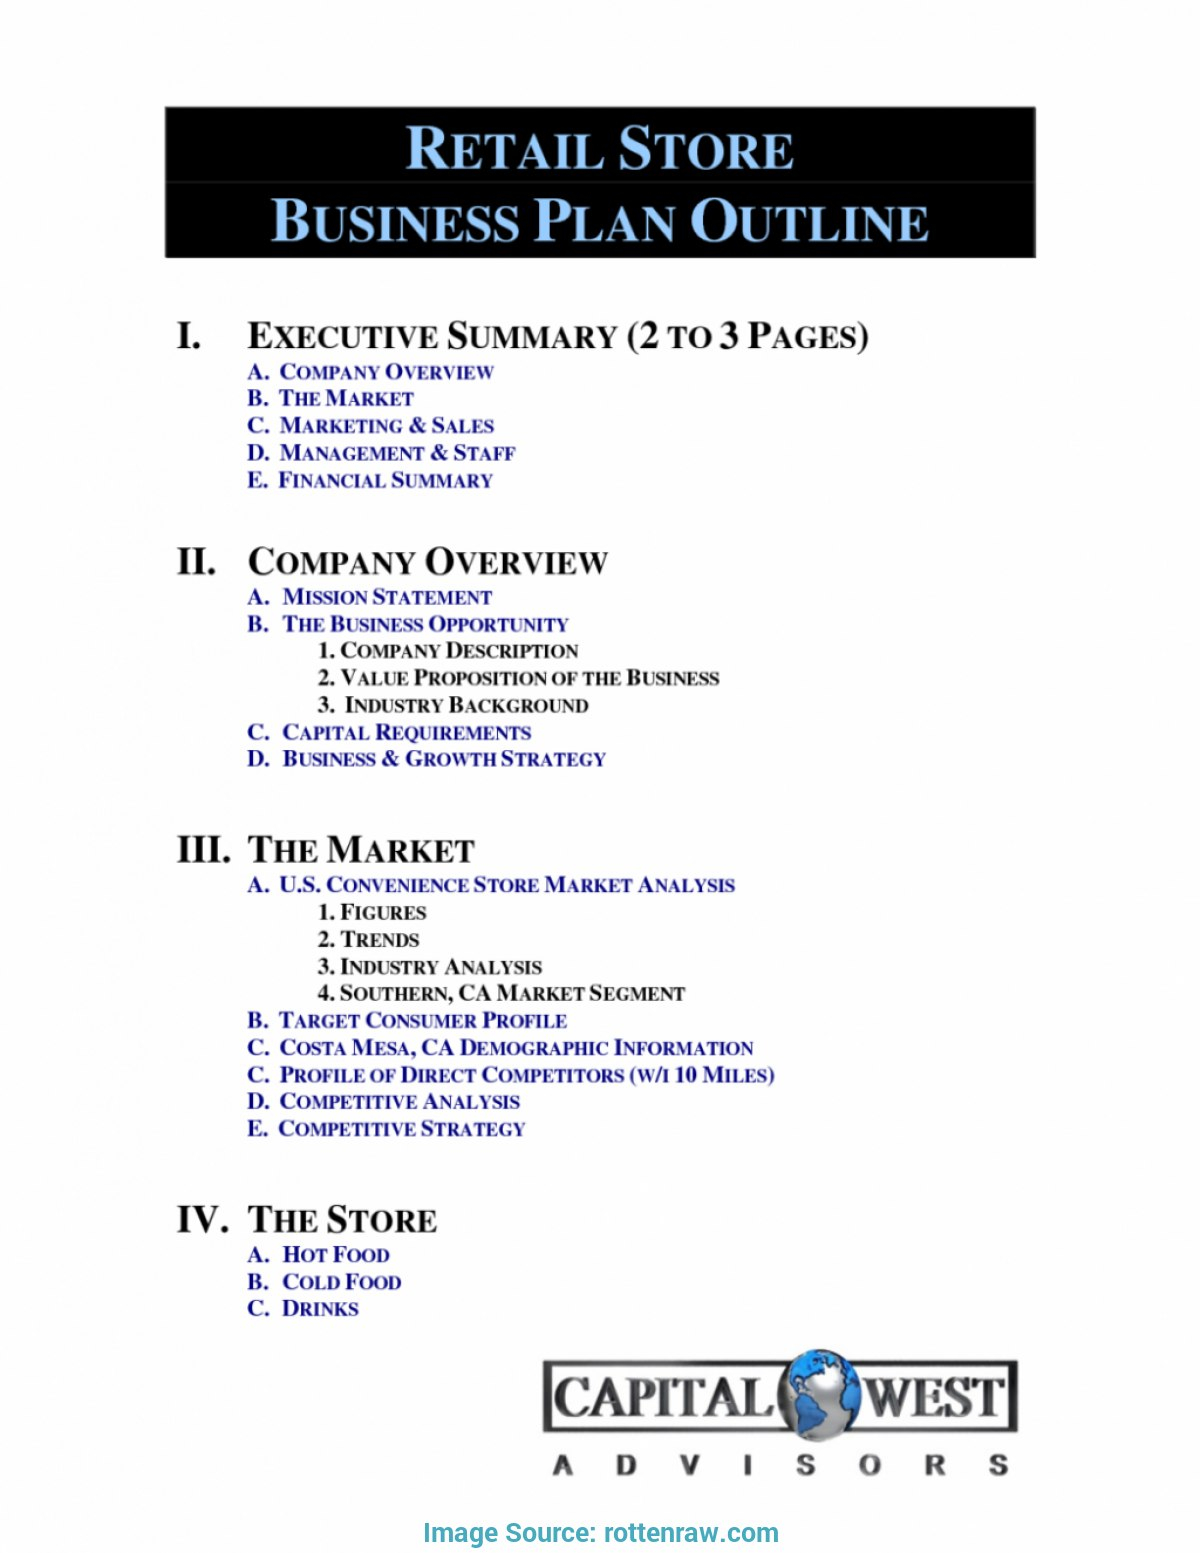 Typical Business Plan Format Slideshare Best Images Of Online For Retail Business Proposal Template